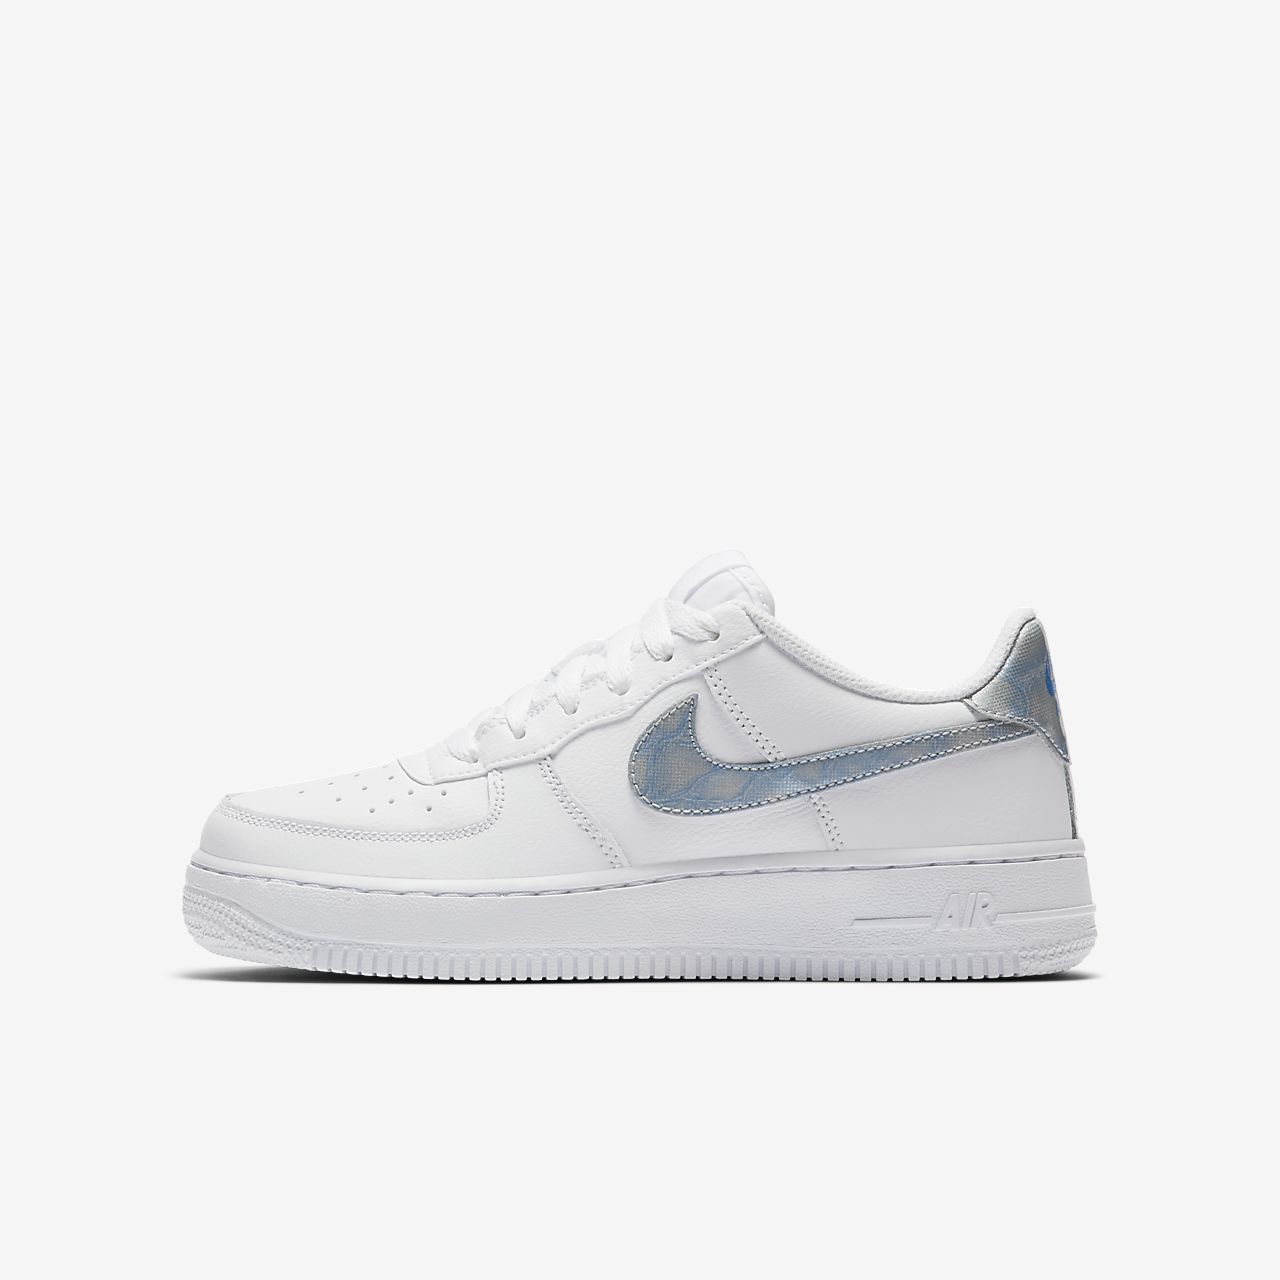 Nike Air Force 1 '06 - Boy Skateboarding Shoes - White